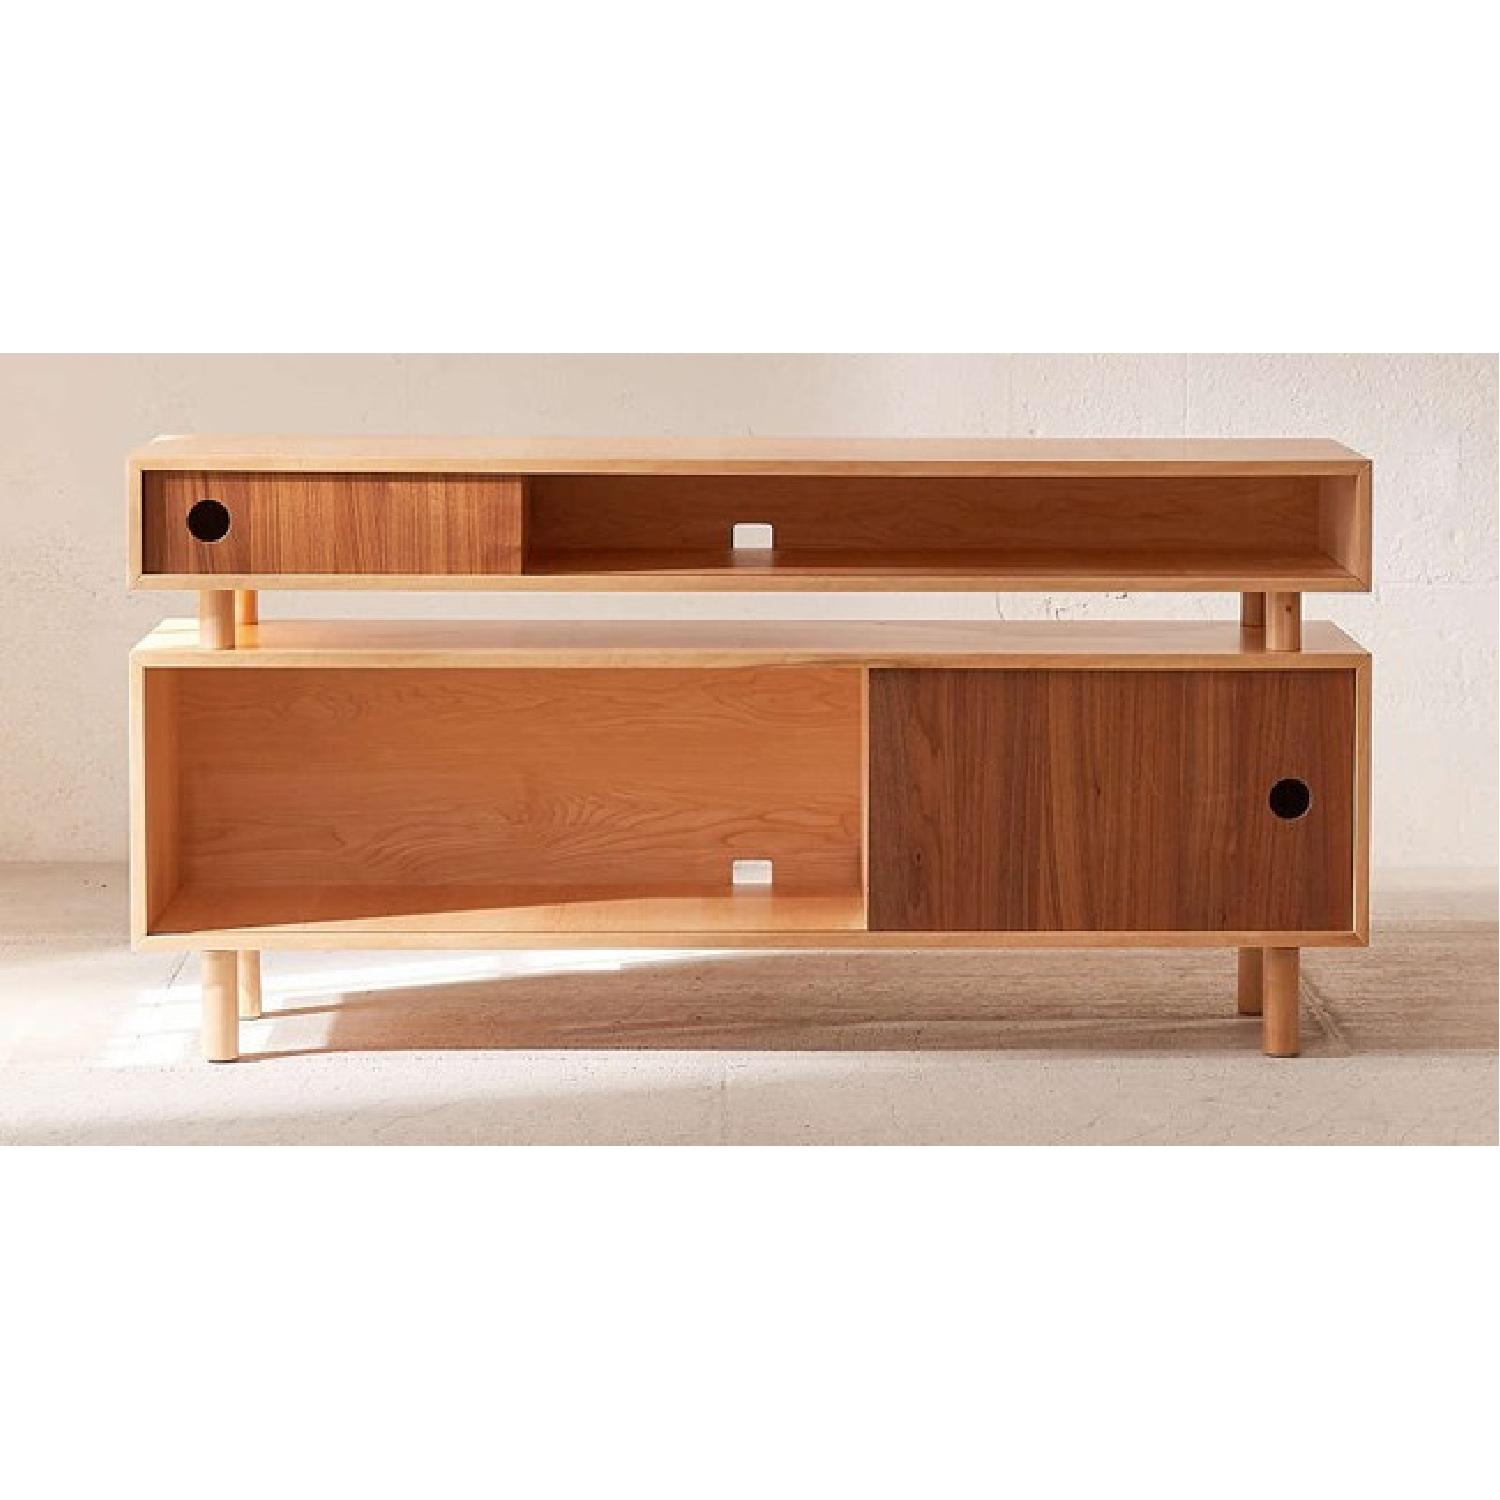 Urban Outfitters Hamilton Wood Media Console - image-11